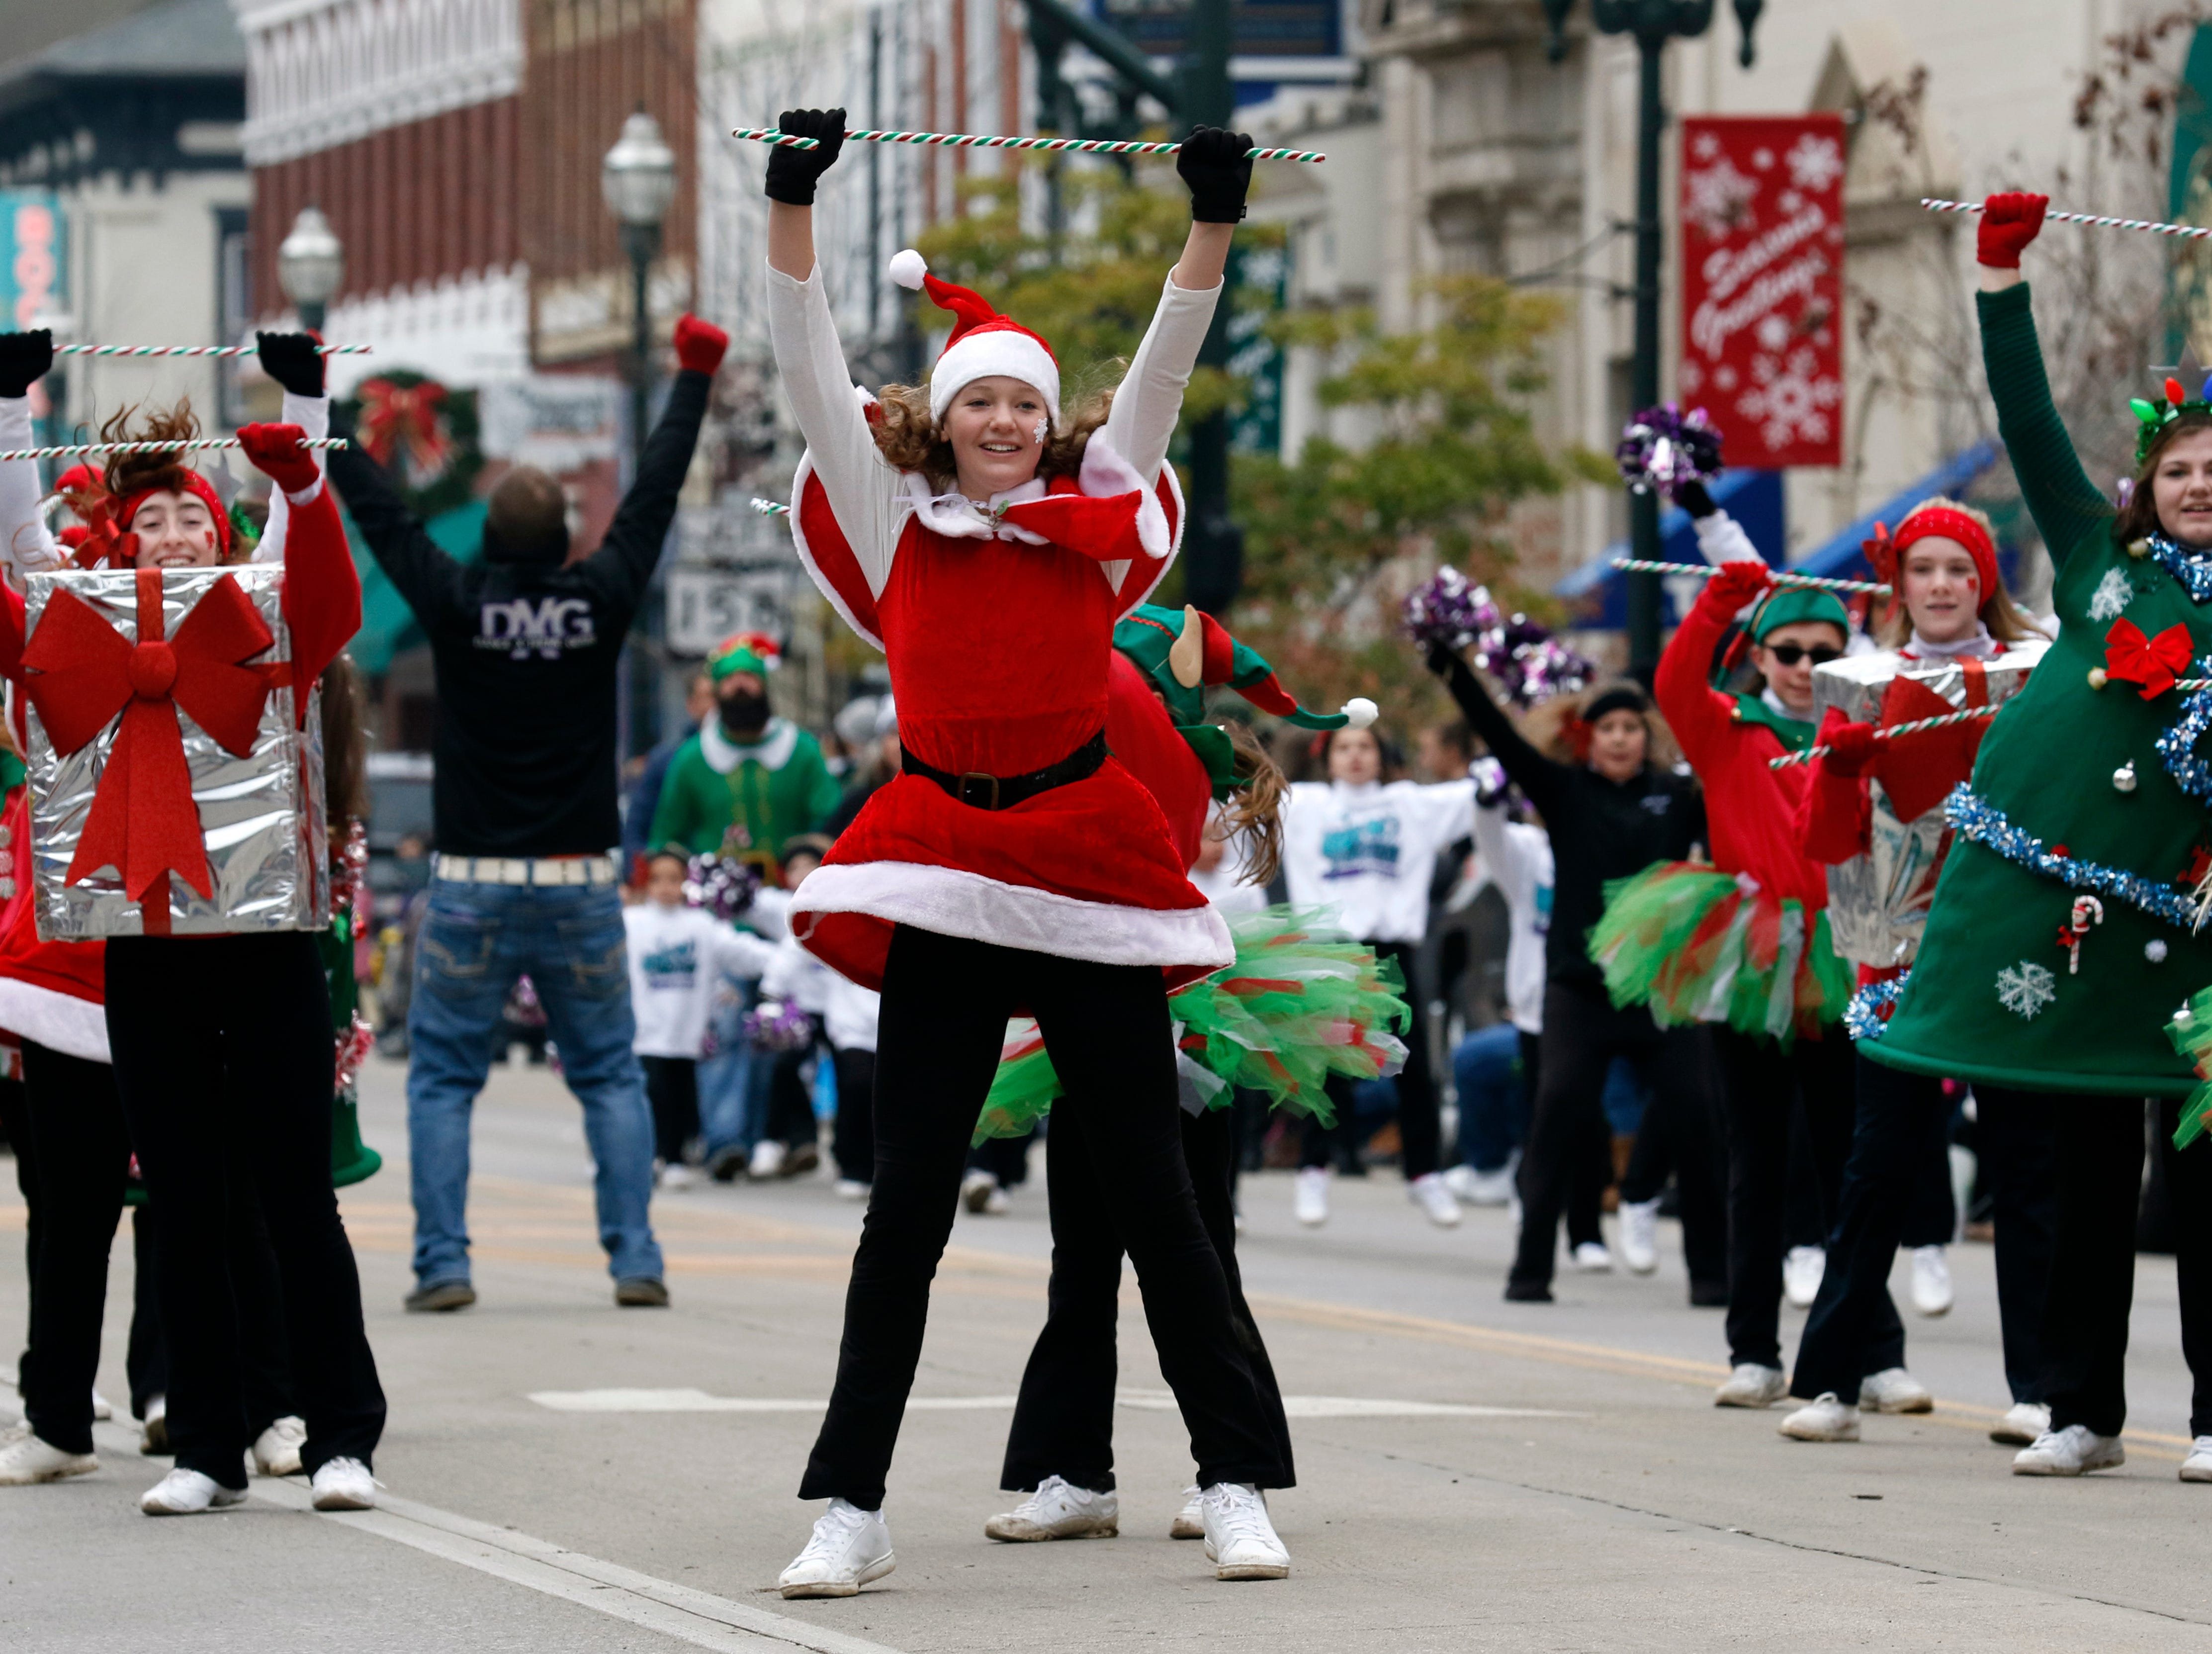 Members of the Kids in Motion dance school perform as they walk in the Lancaster Holiday Festival Parade Saturday, Nov. 17, 2018, in Lancaster.